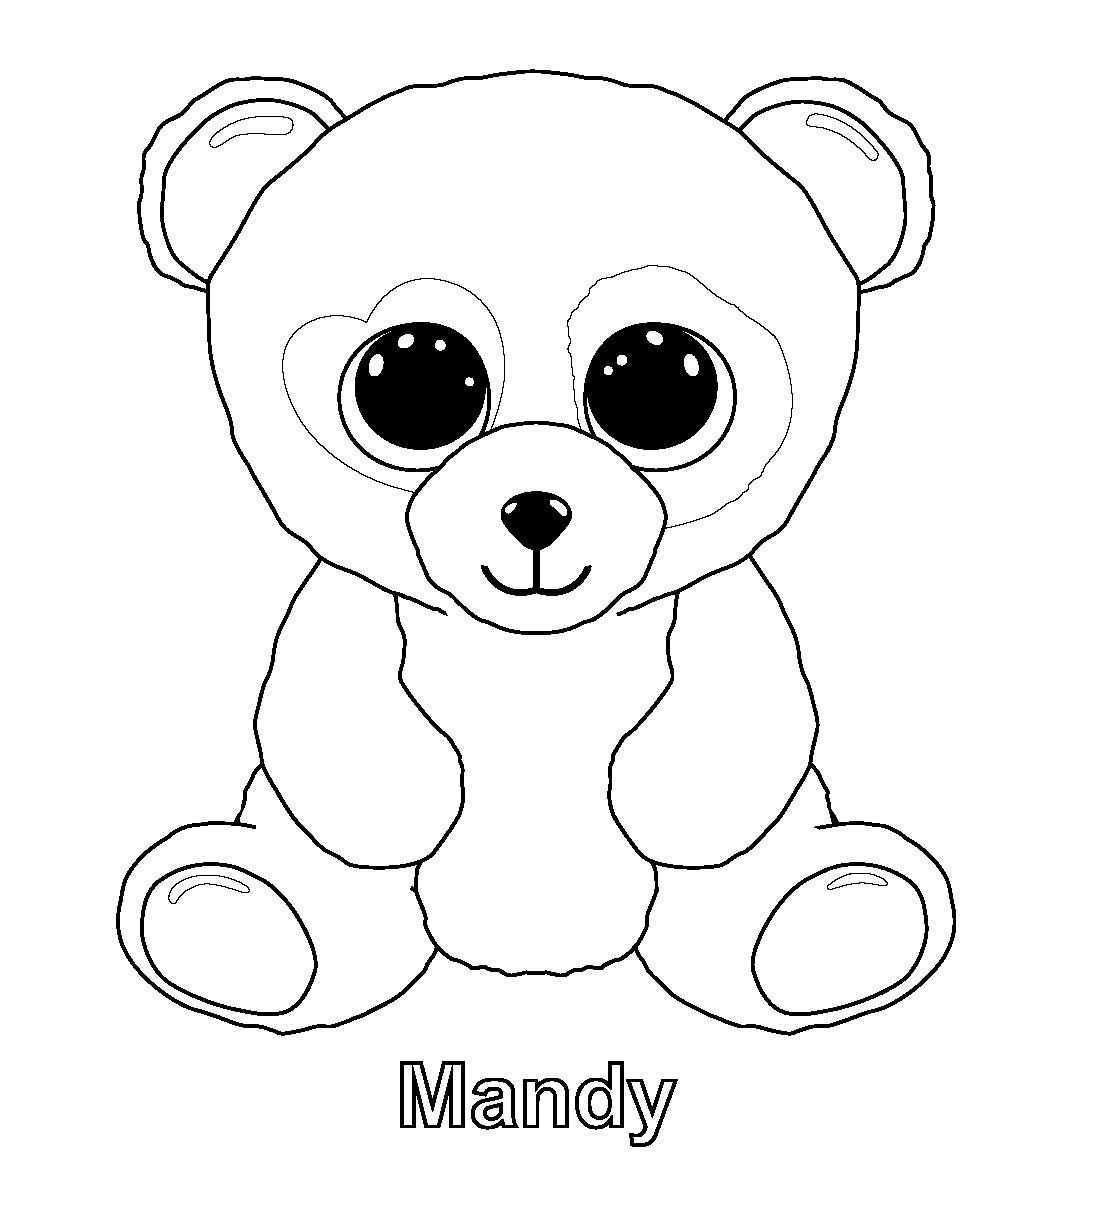 Ty Beanie Boos Coloring Pages Panda Coloring Pages Beanie Boo Birthdays Beanie Boo